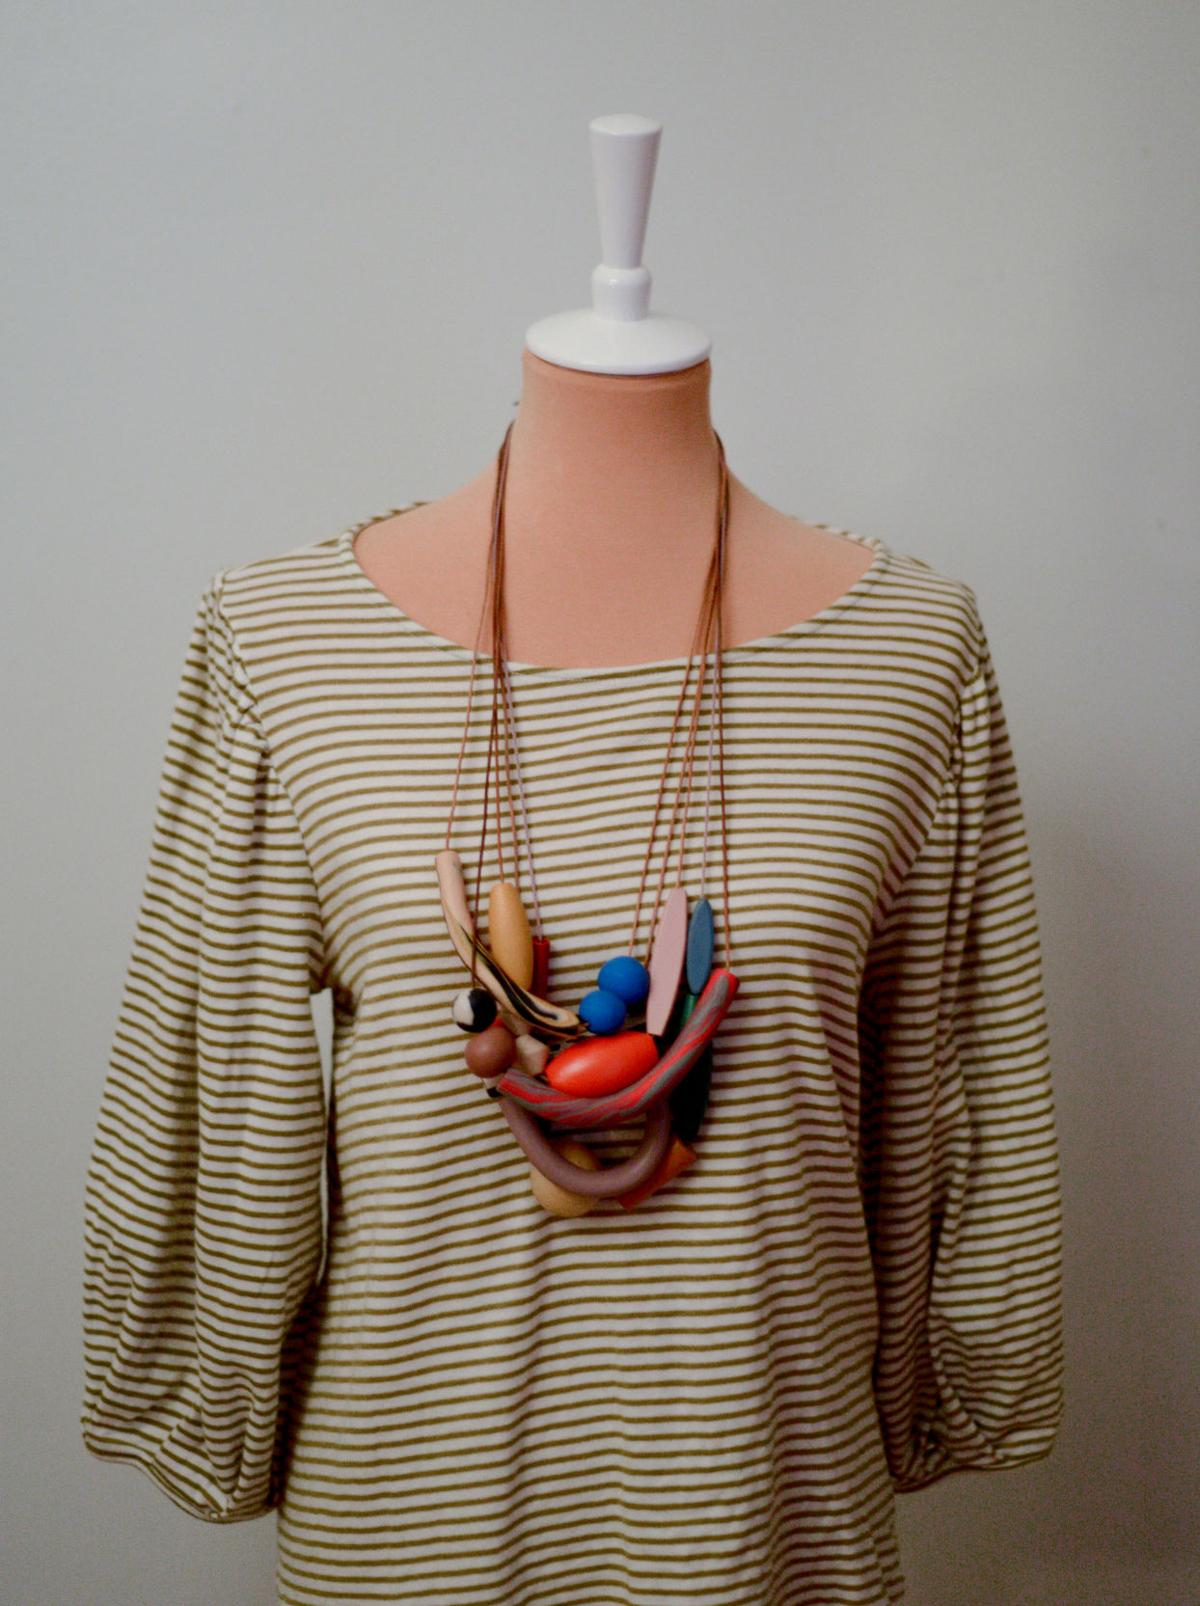 Samae Claspill's necklace hangs on a mannequin